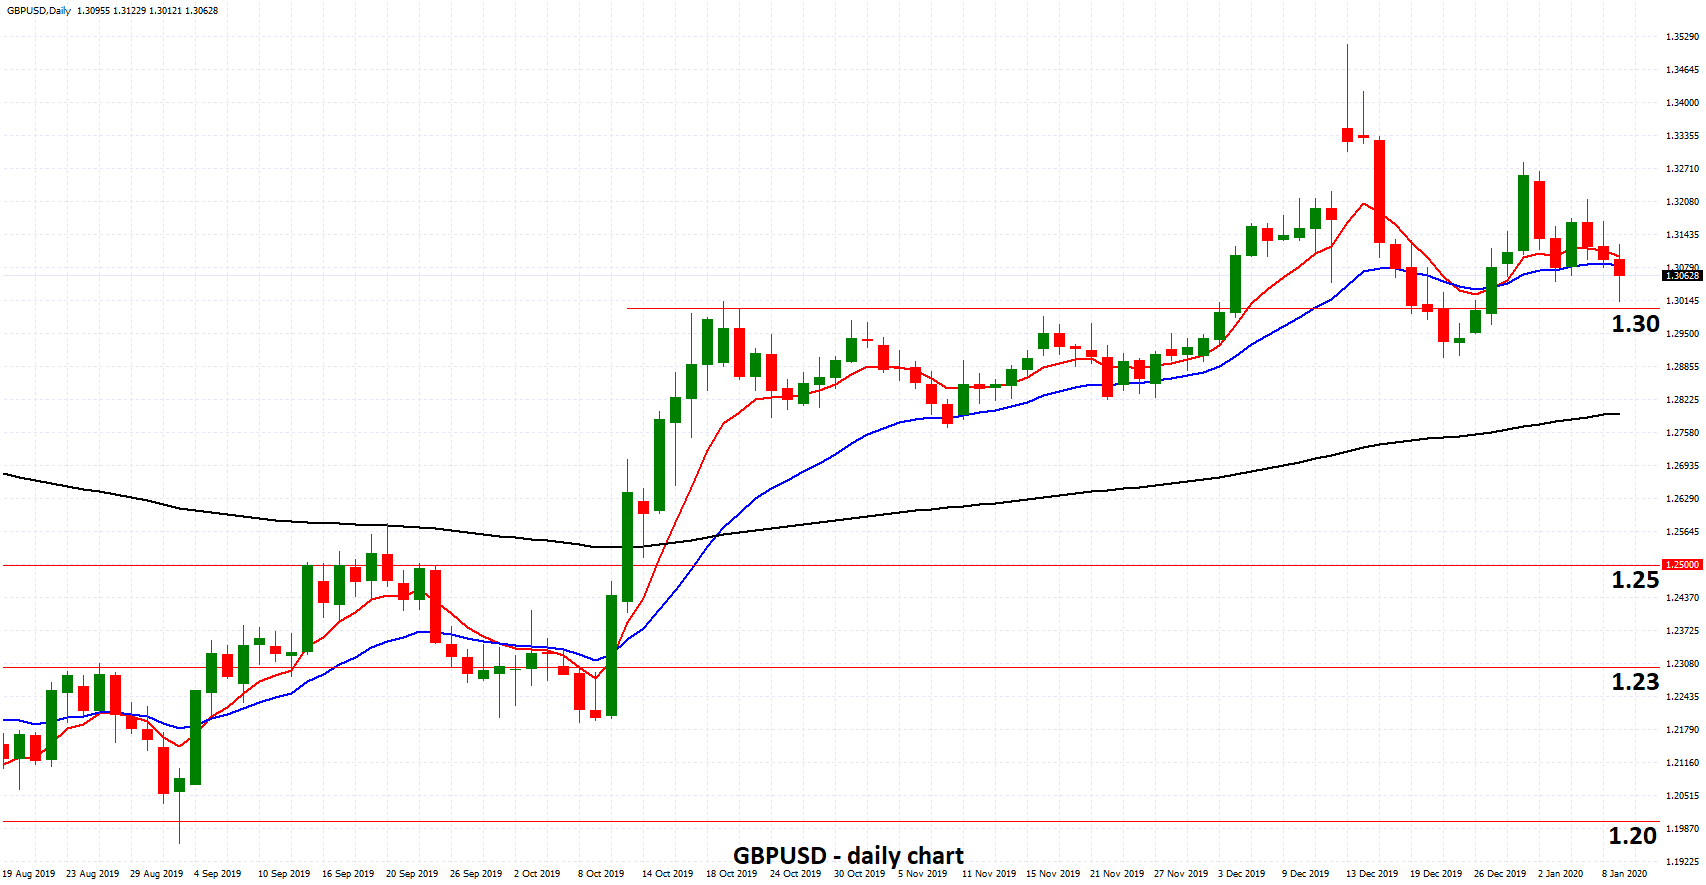 GBPUSD - Enjoys Strong Support from 1.30 as Brexit Given Green Light